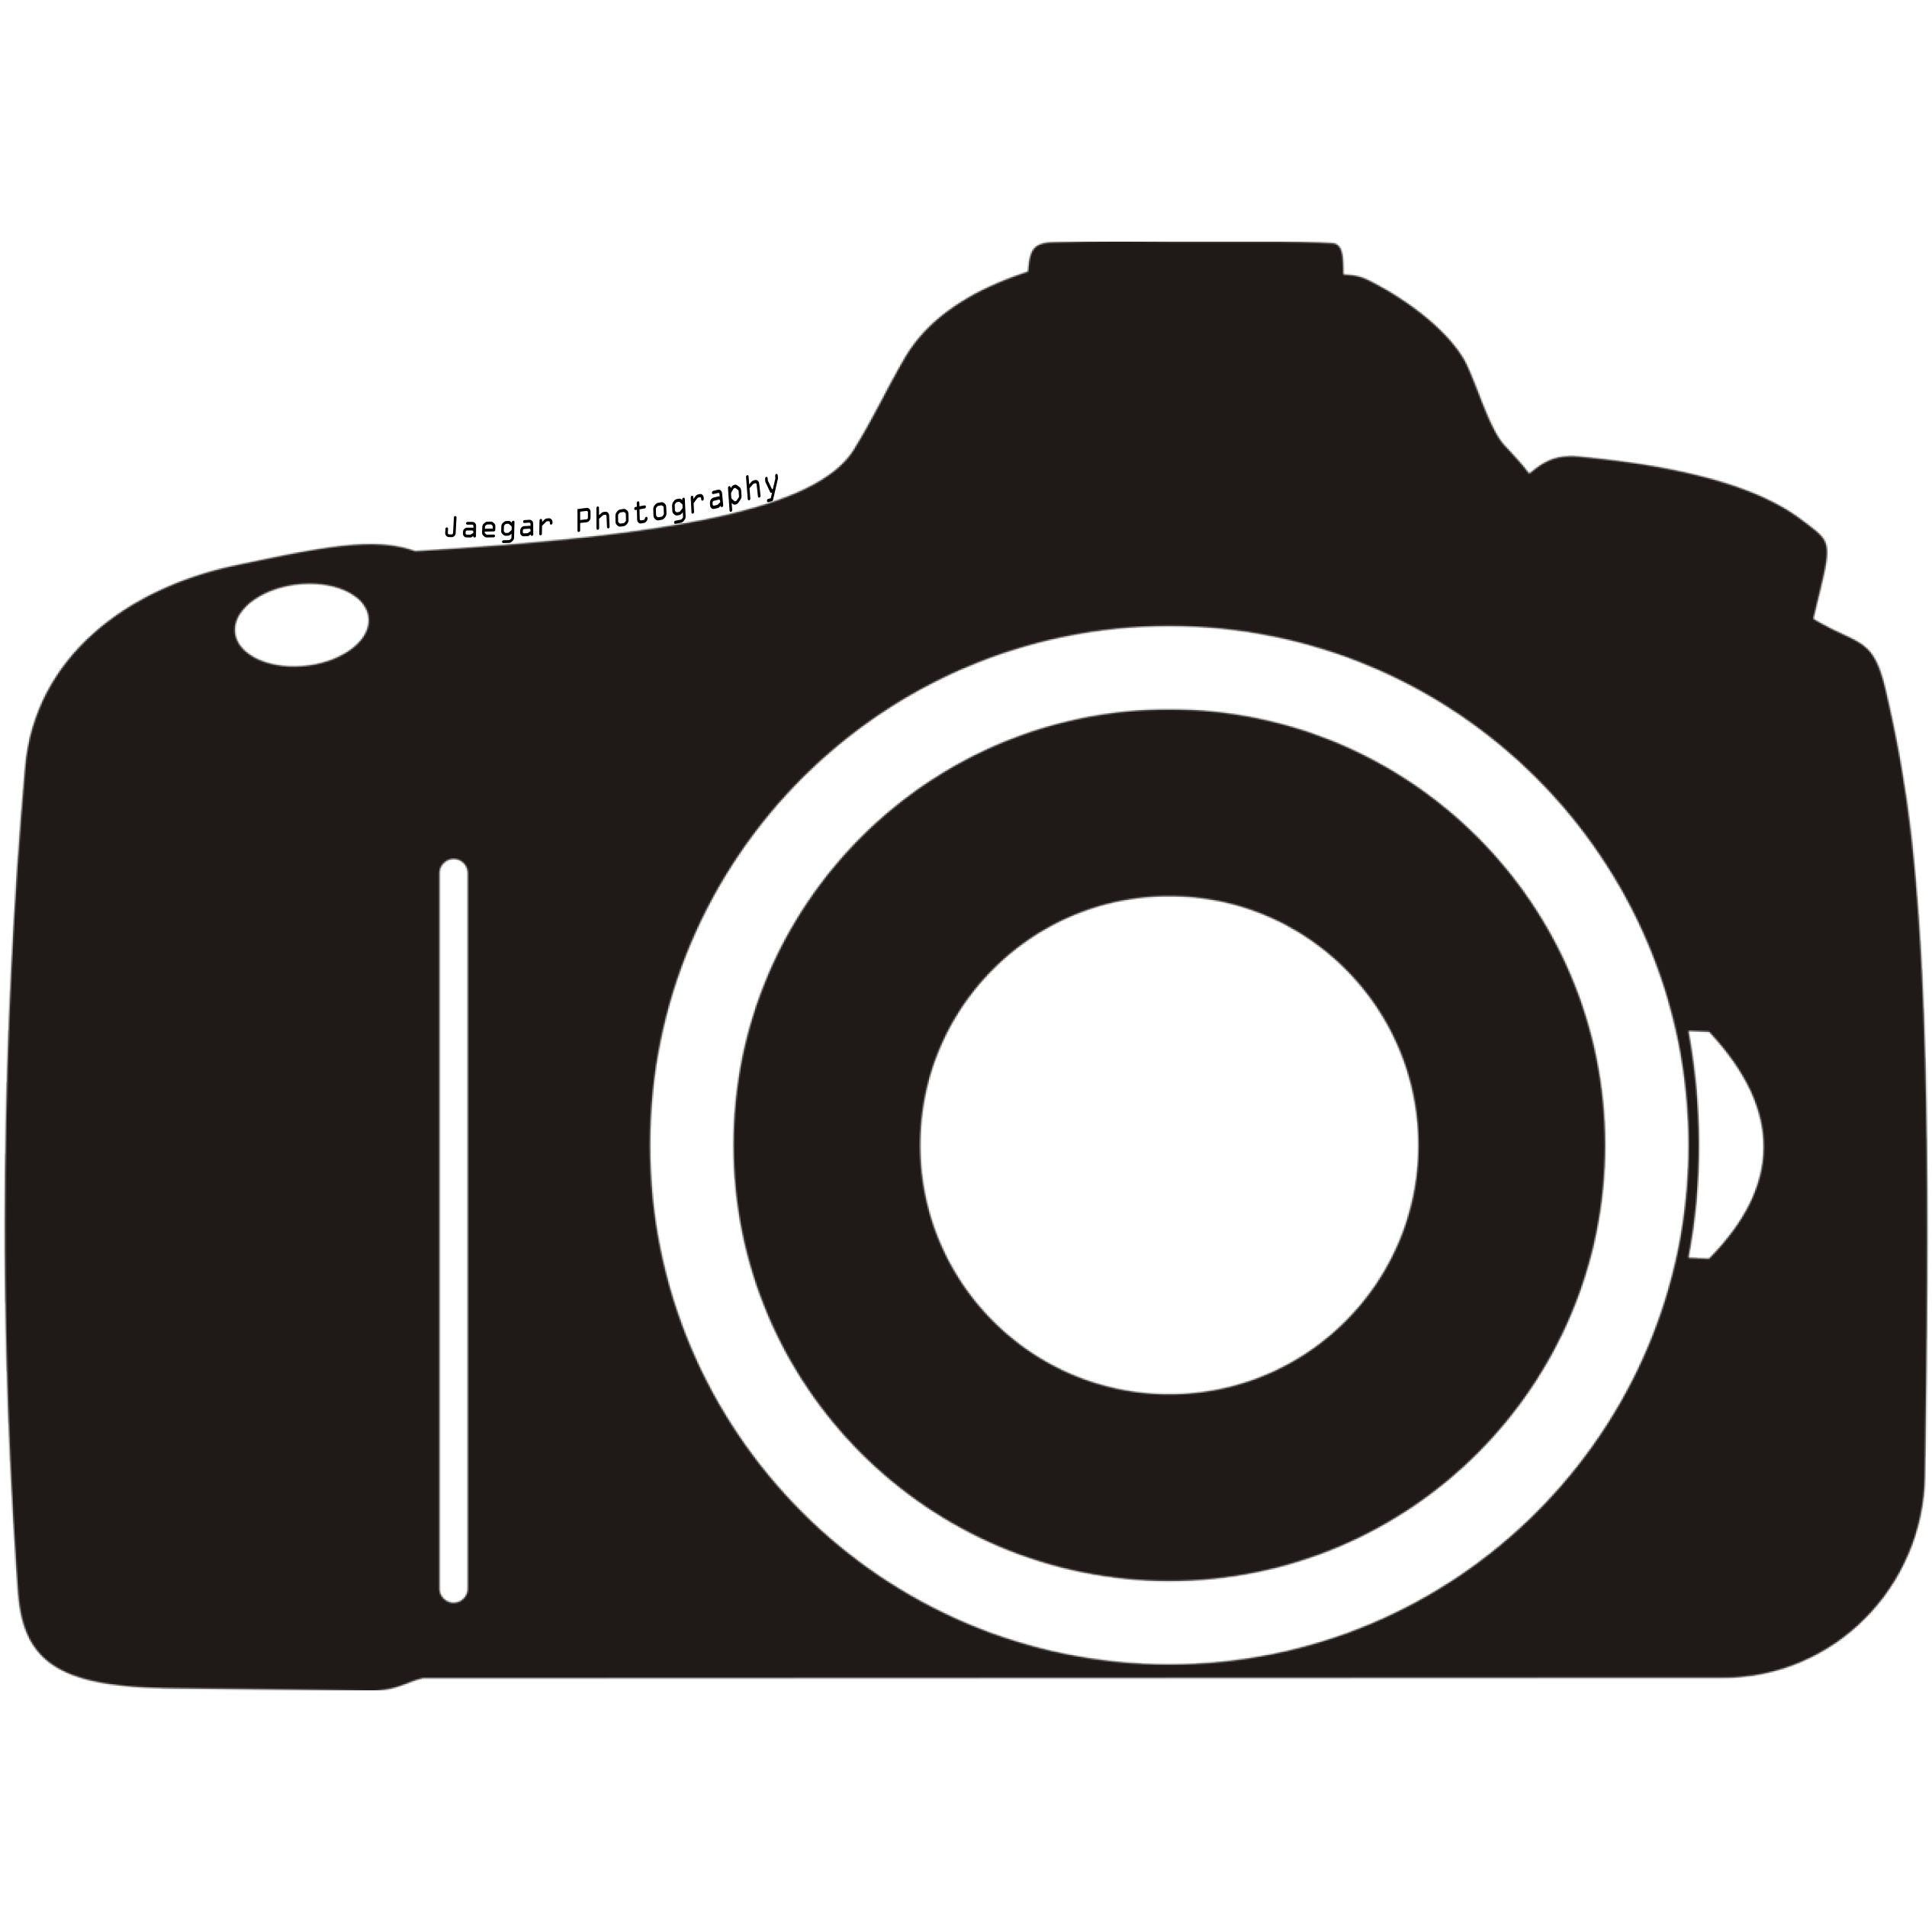 Free Photography Symbol Cliparts, Download Free Clip Art.